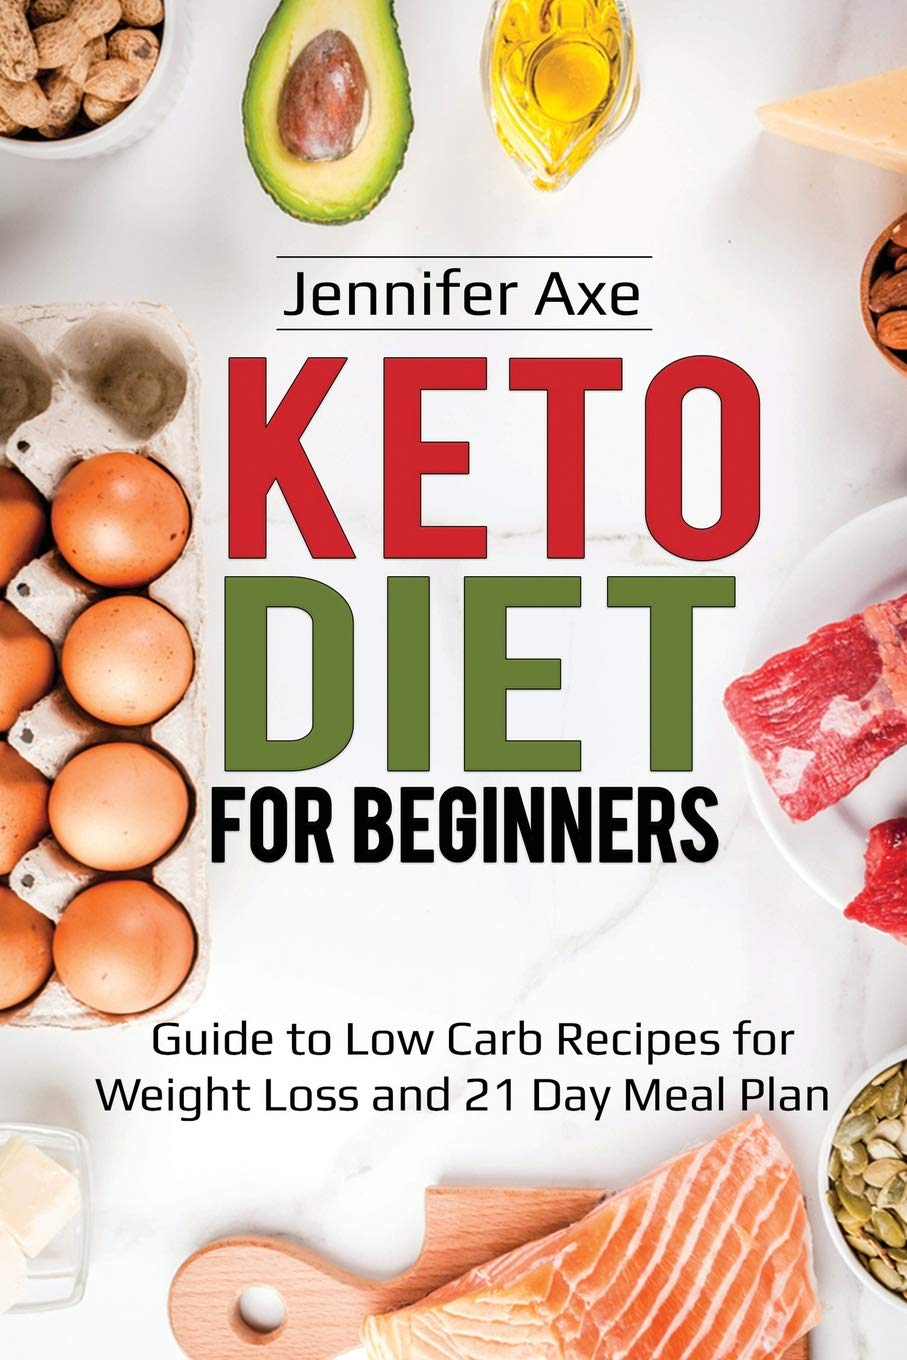 diet weight loss low carb